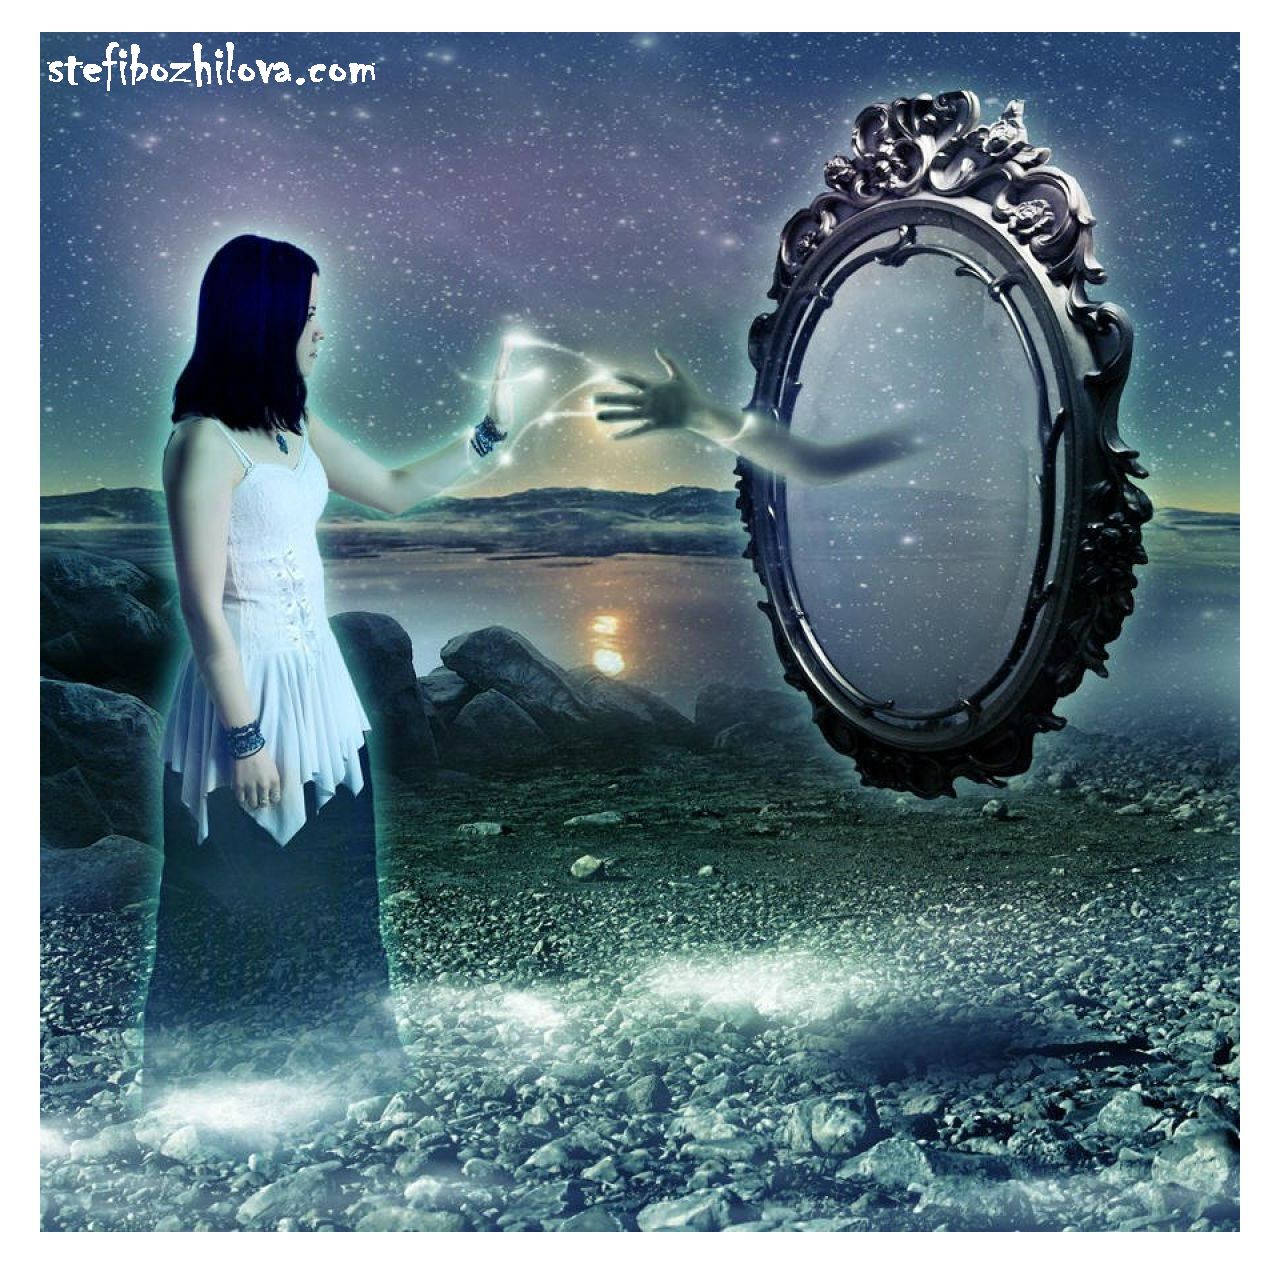 Girl mirror reflection starry sky